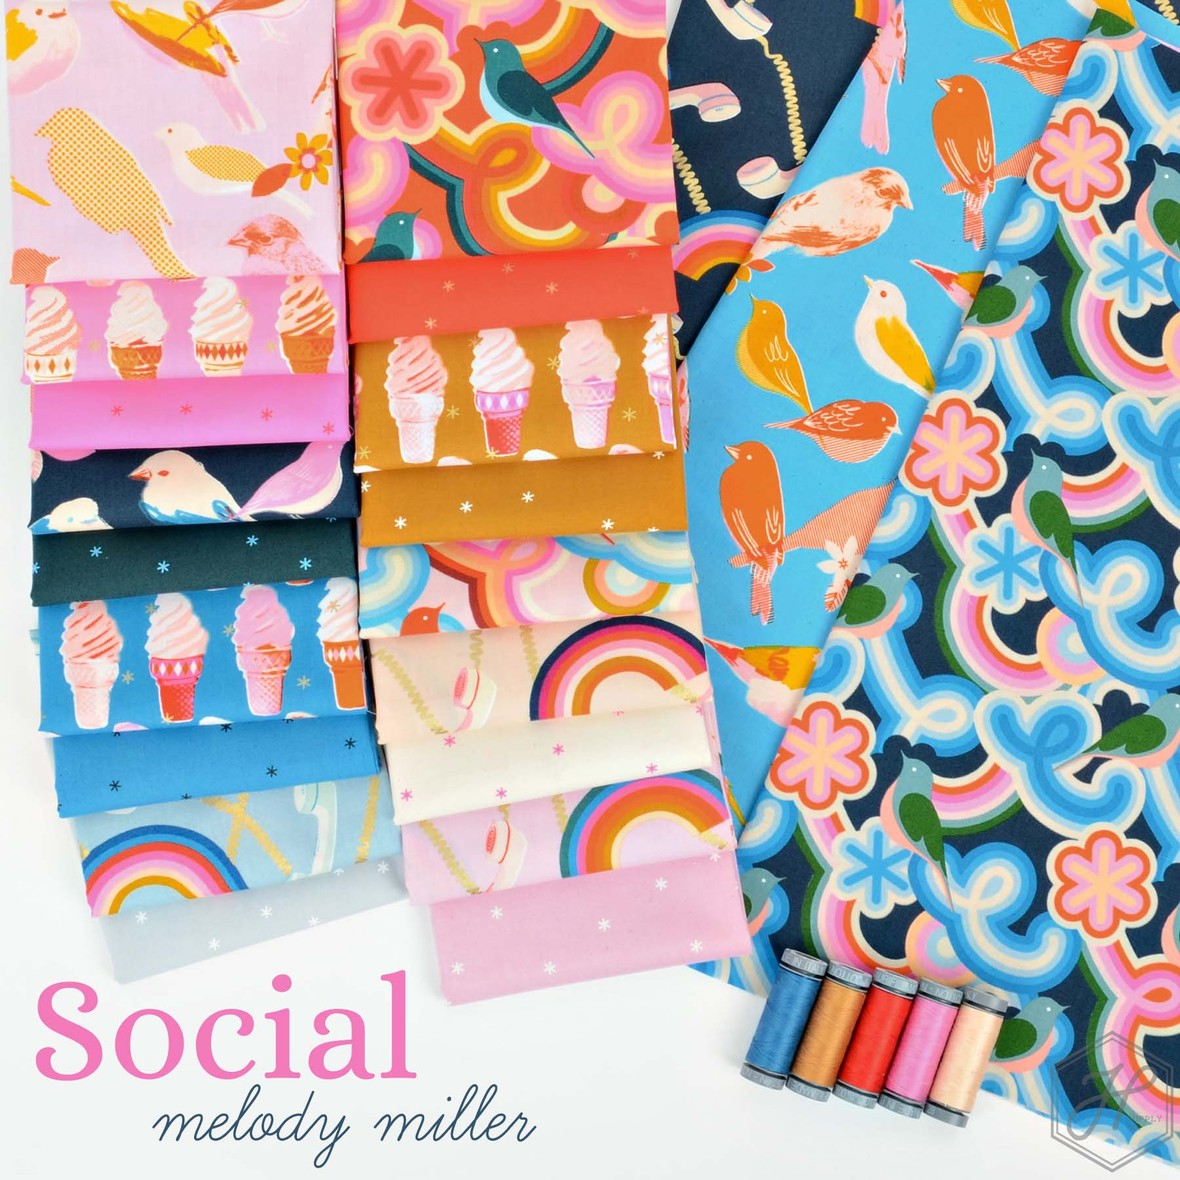 Social Fabric Melody Miller Fabric Poster at Hawthorne Supply Co